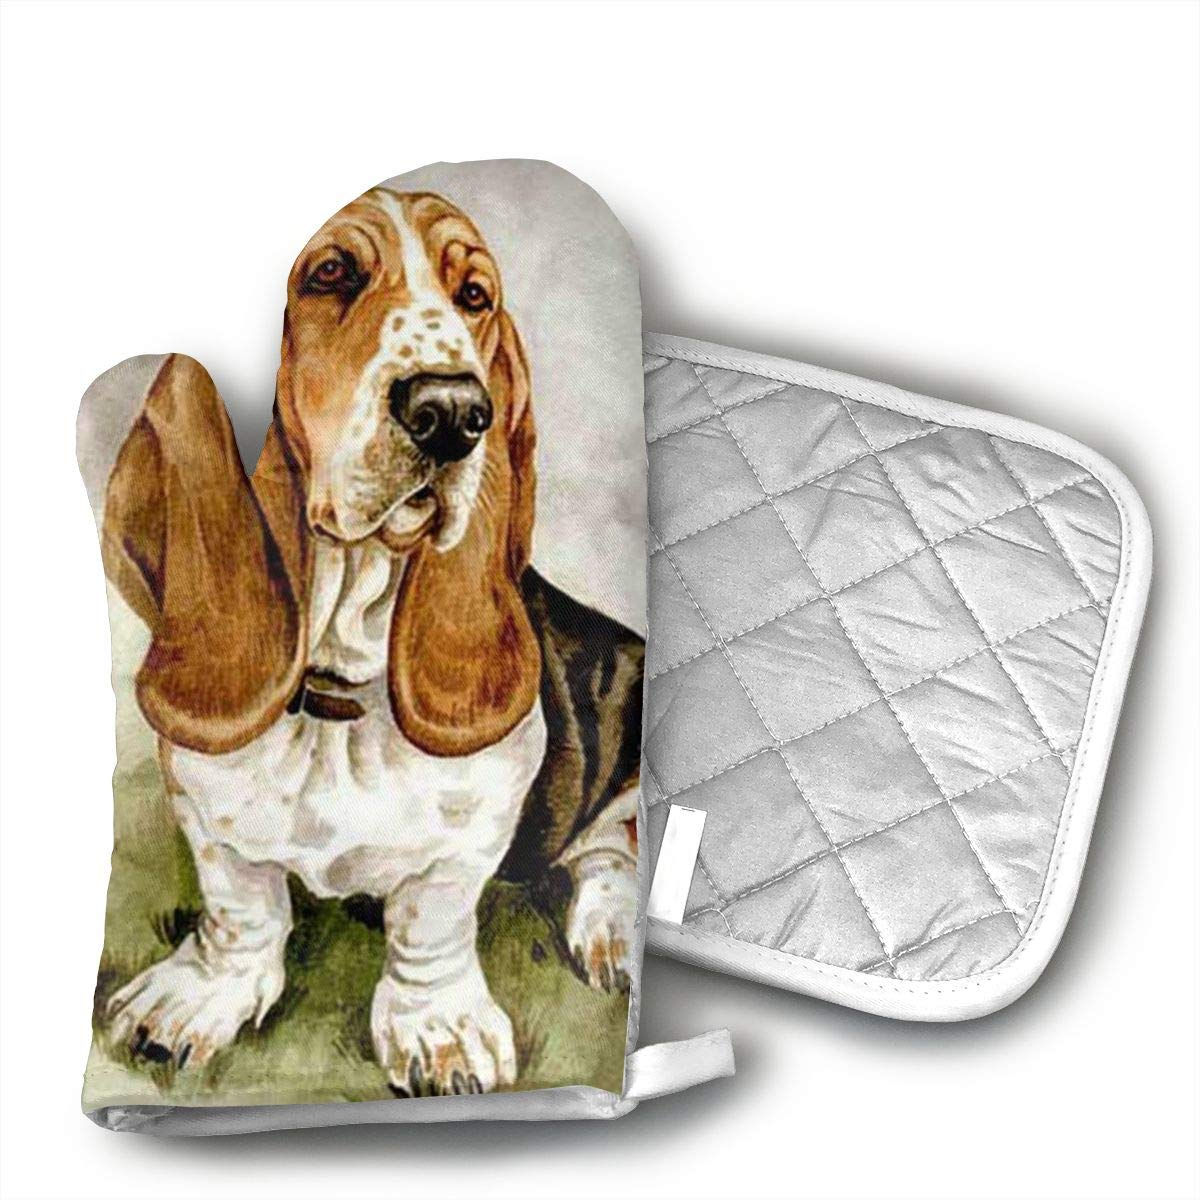 Wiqo9 Basset Hound Oven Mitts and Pot Holders Kitchen Mitten Cooking Gloves,Cooking, Baking, BBQ.